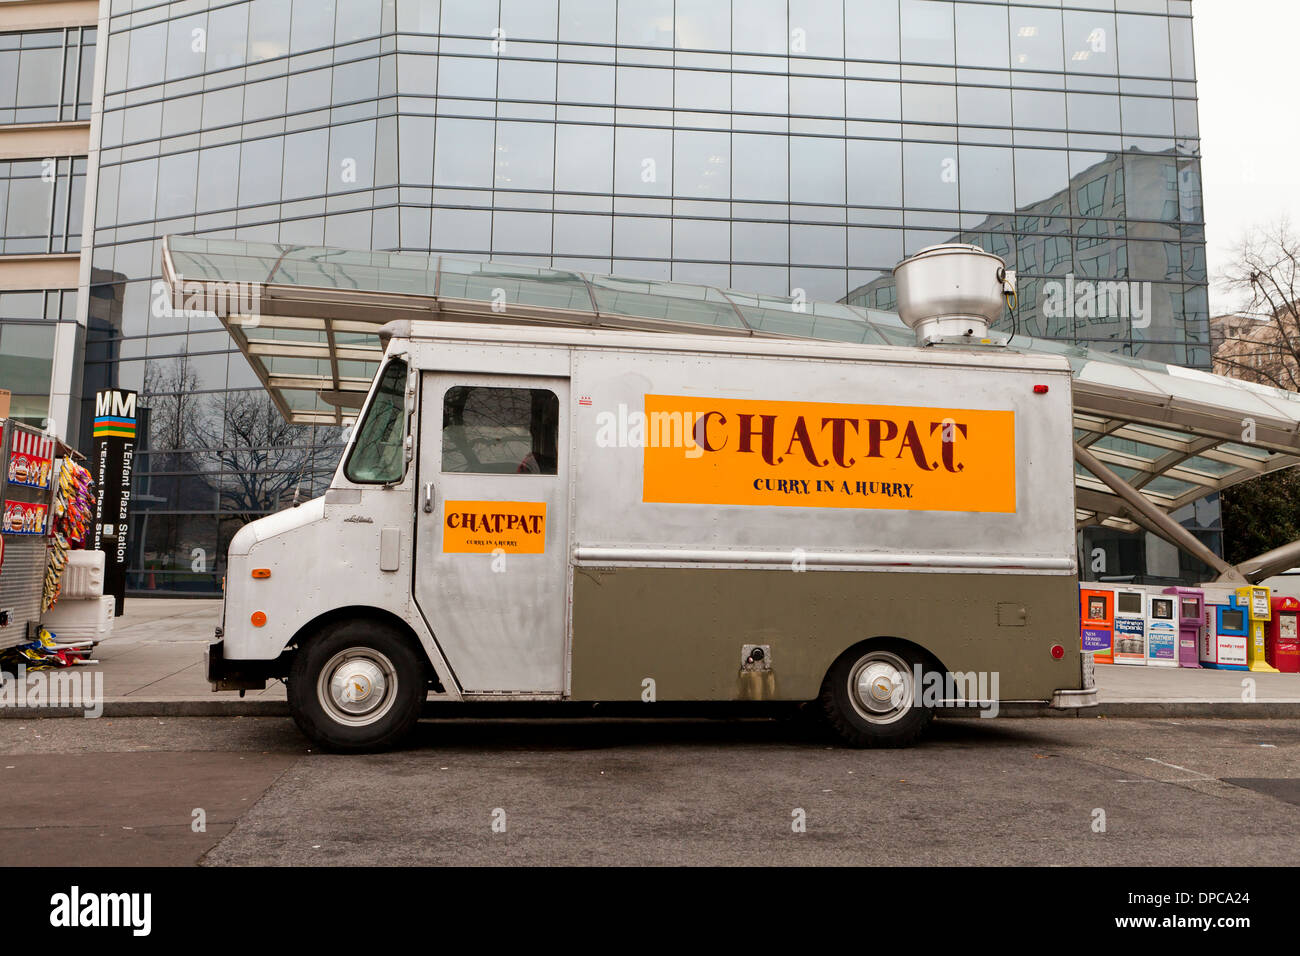 Indian curry food truck - USA - Stock Image